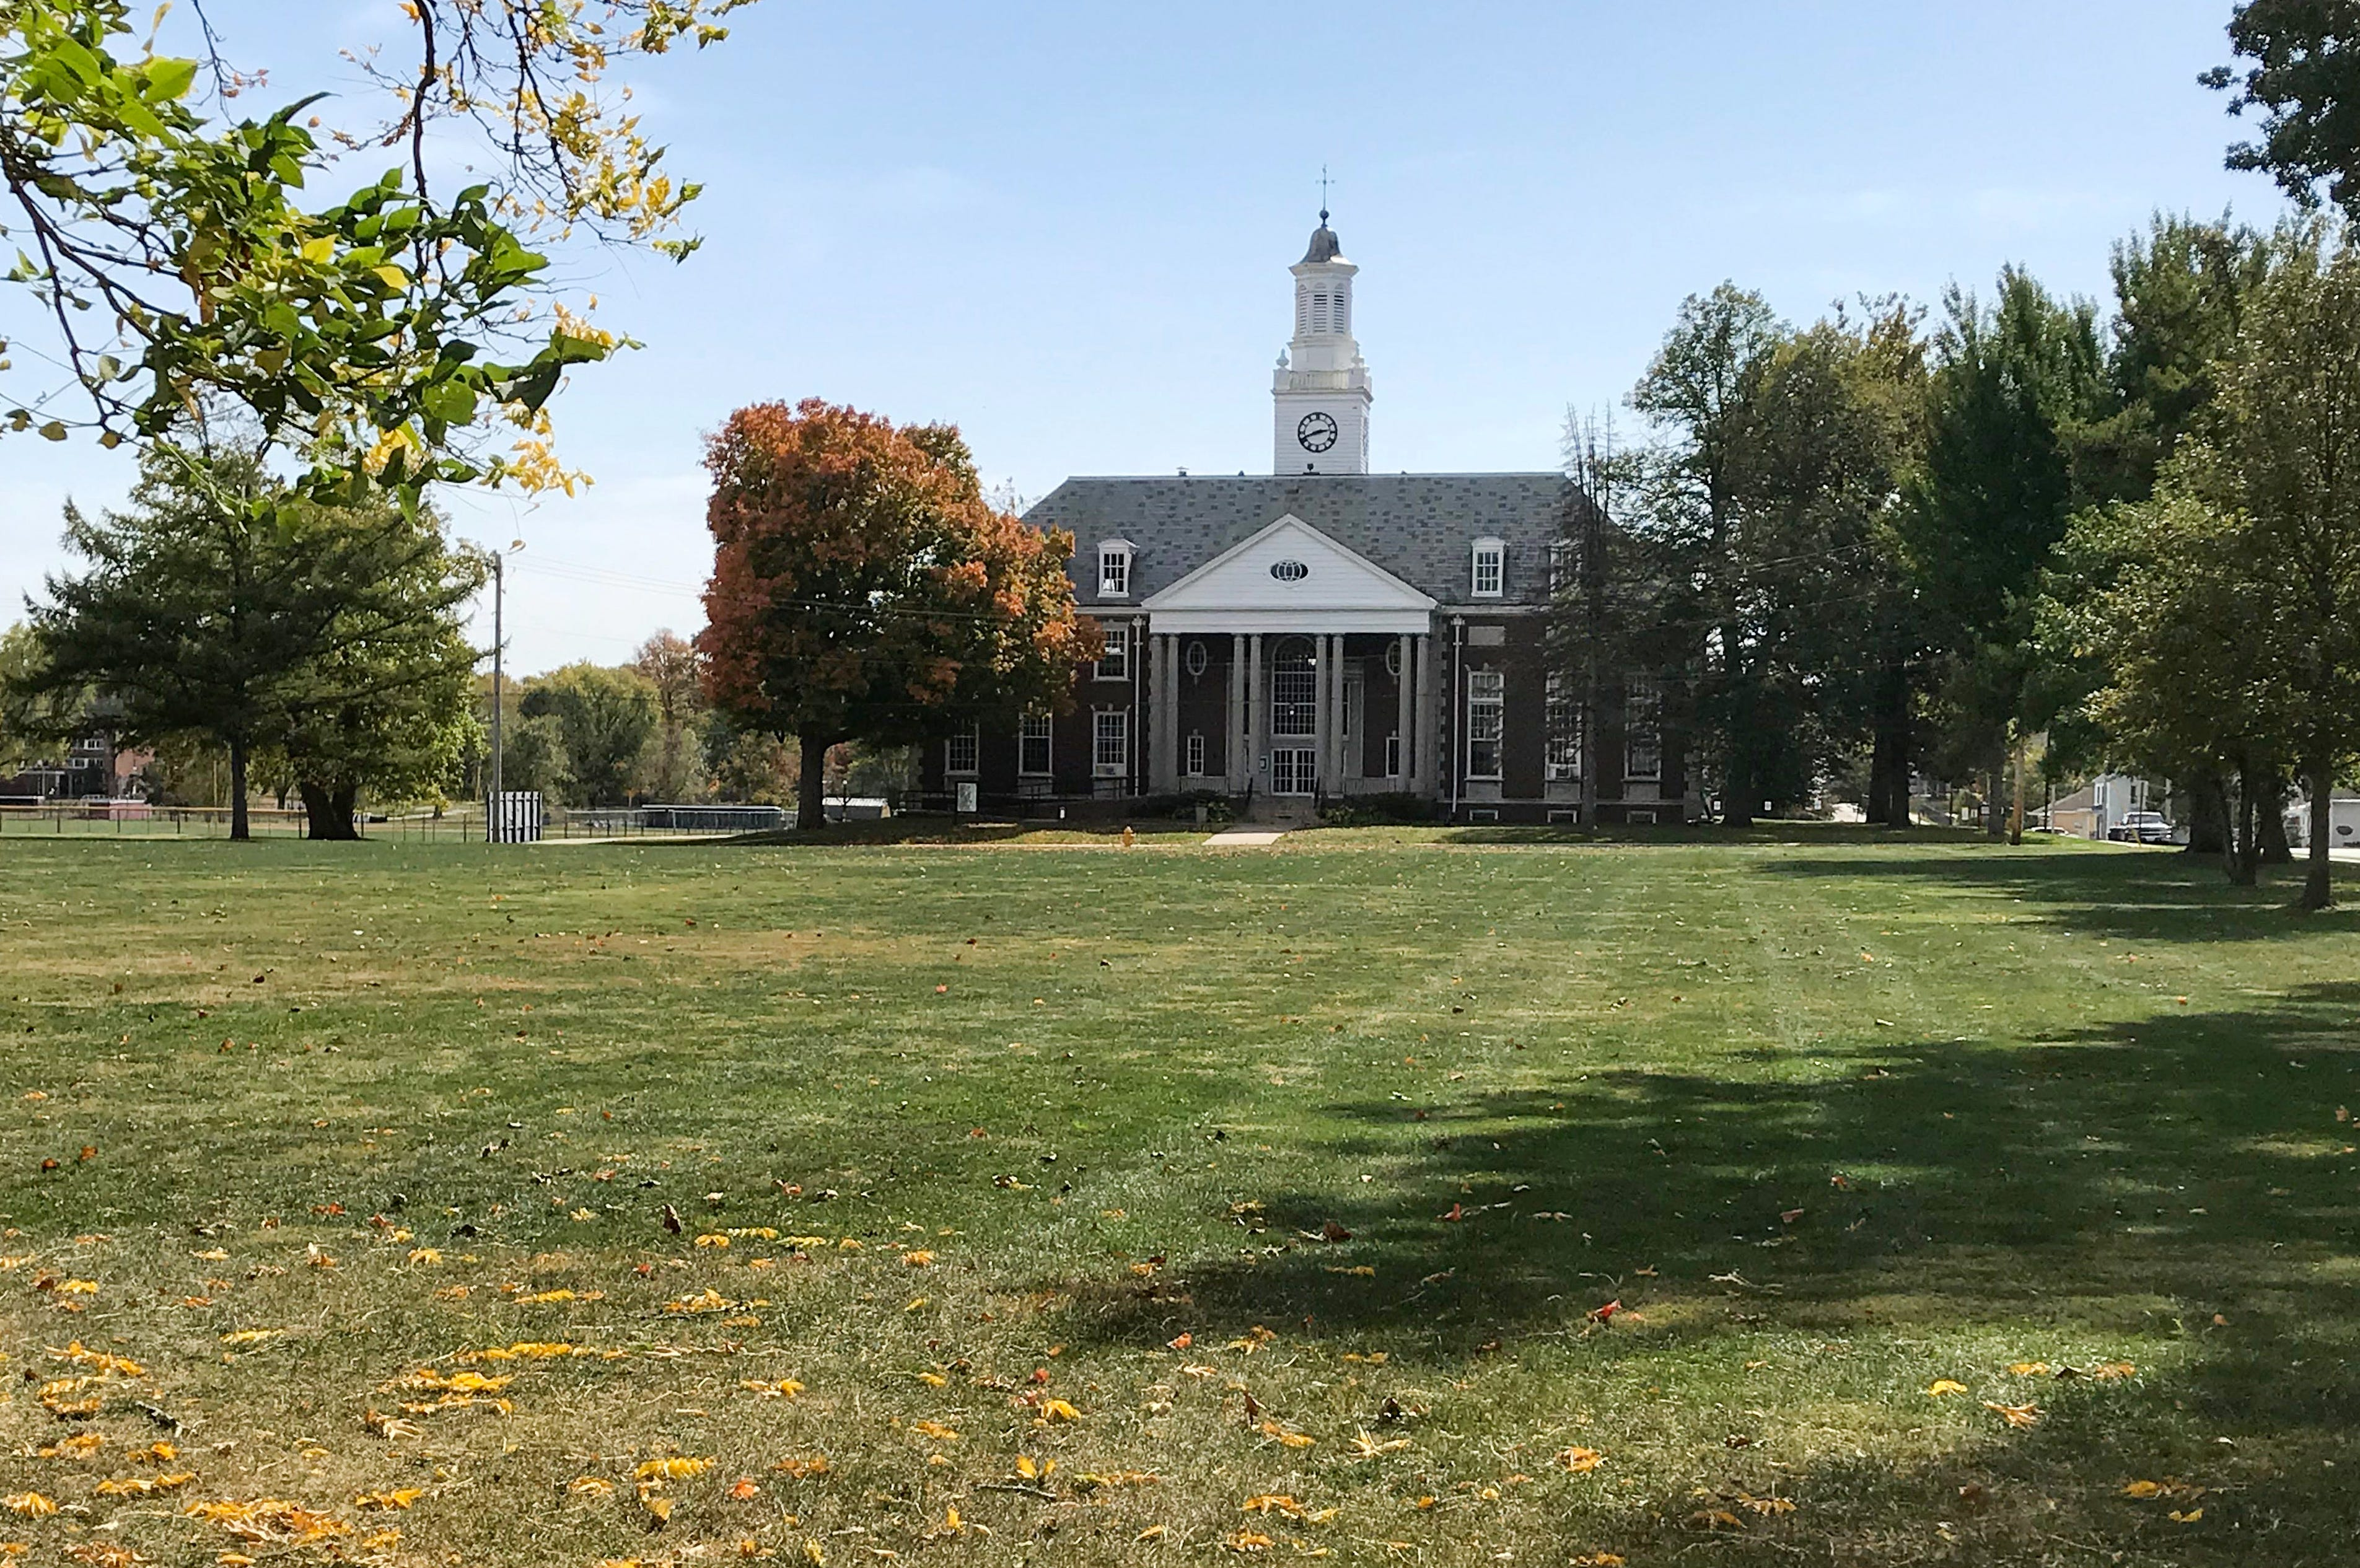 The grass is still being mowed, but no students walk across it to get the Henry Pfeiffer Library at MacMurray College. Built in 1941, it was sold at auction in mid-November with the Gamble Campus Center for $19,000.